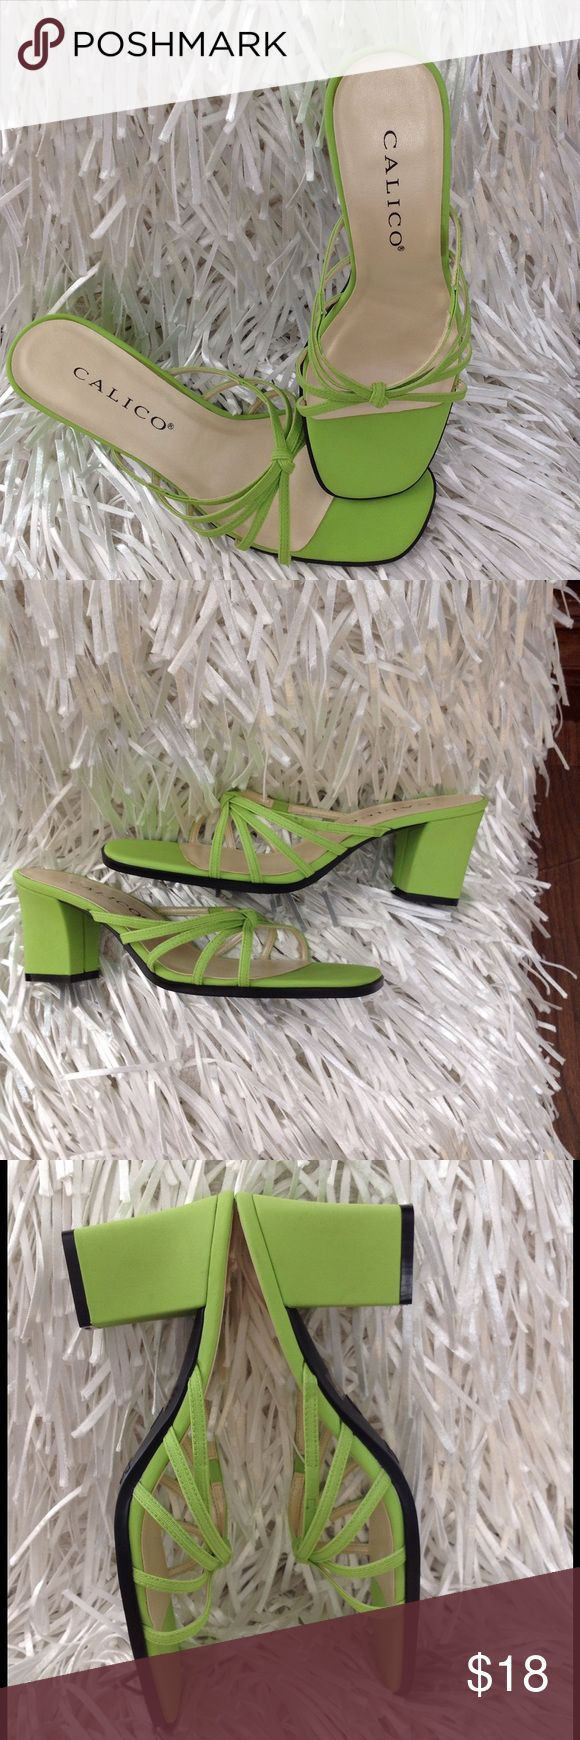 "Calico sandals neon green slip on heels size 8.5 Calico sandals. Neon green color. The heel is about 3"" tall. Size 8.5 B. These would be very stylish with any spring or summer outfit. Good preowned condition. calico Shoes Sandals"